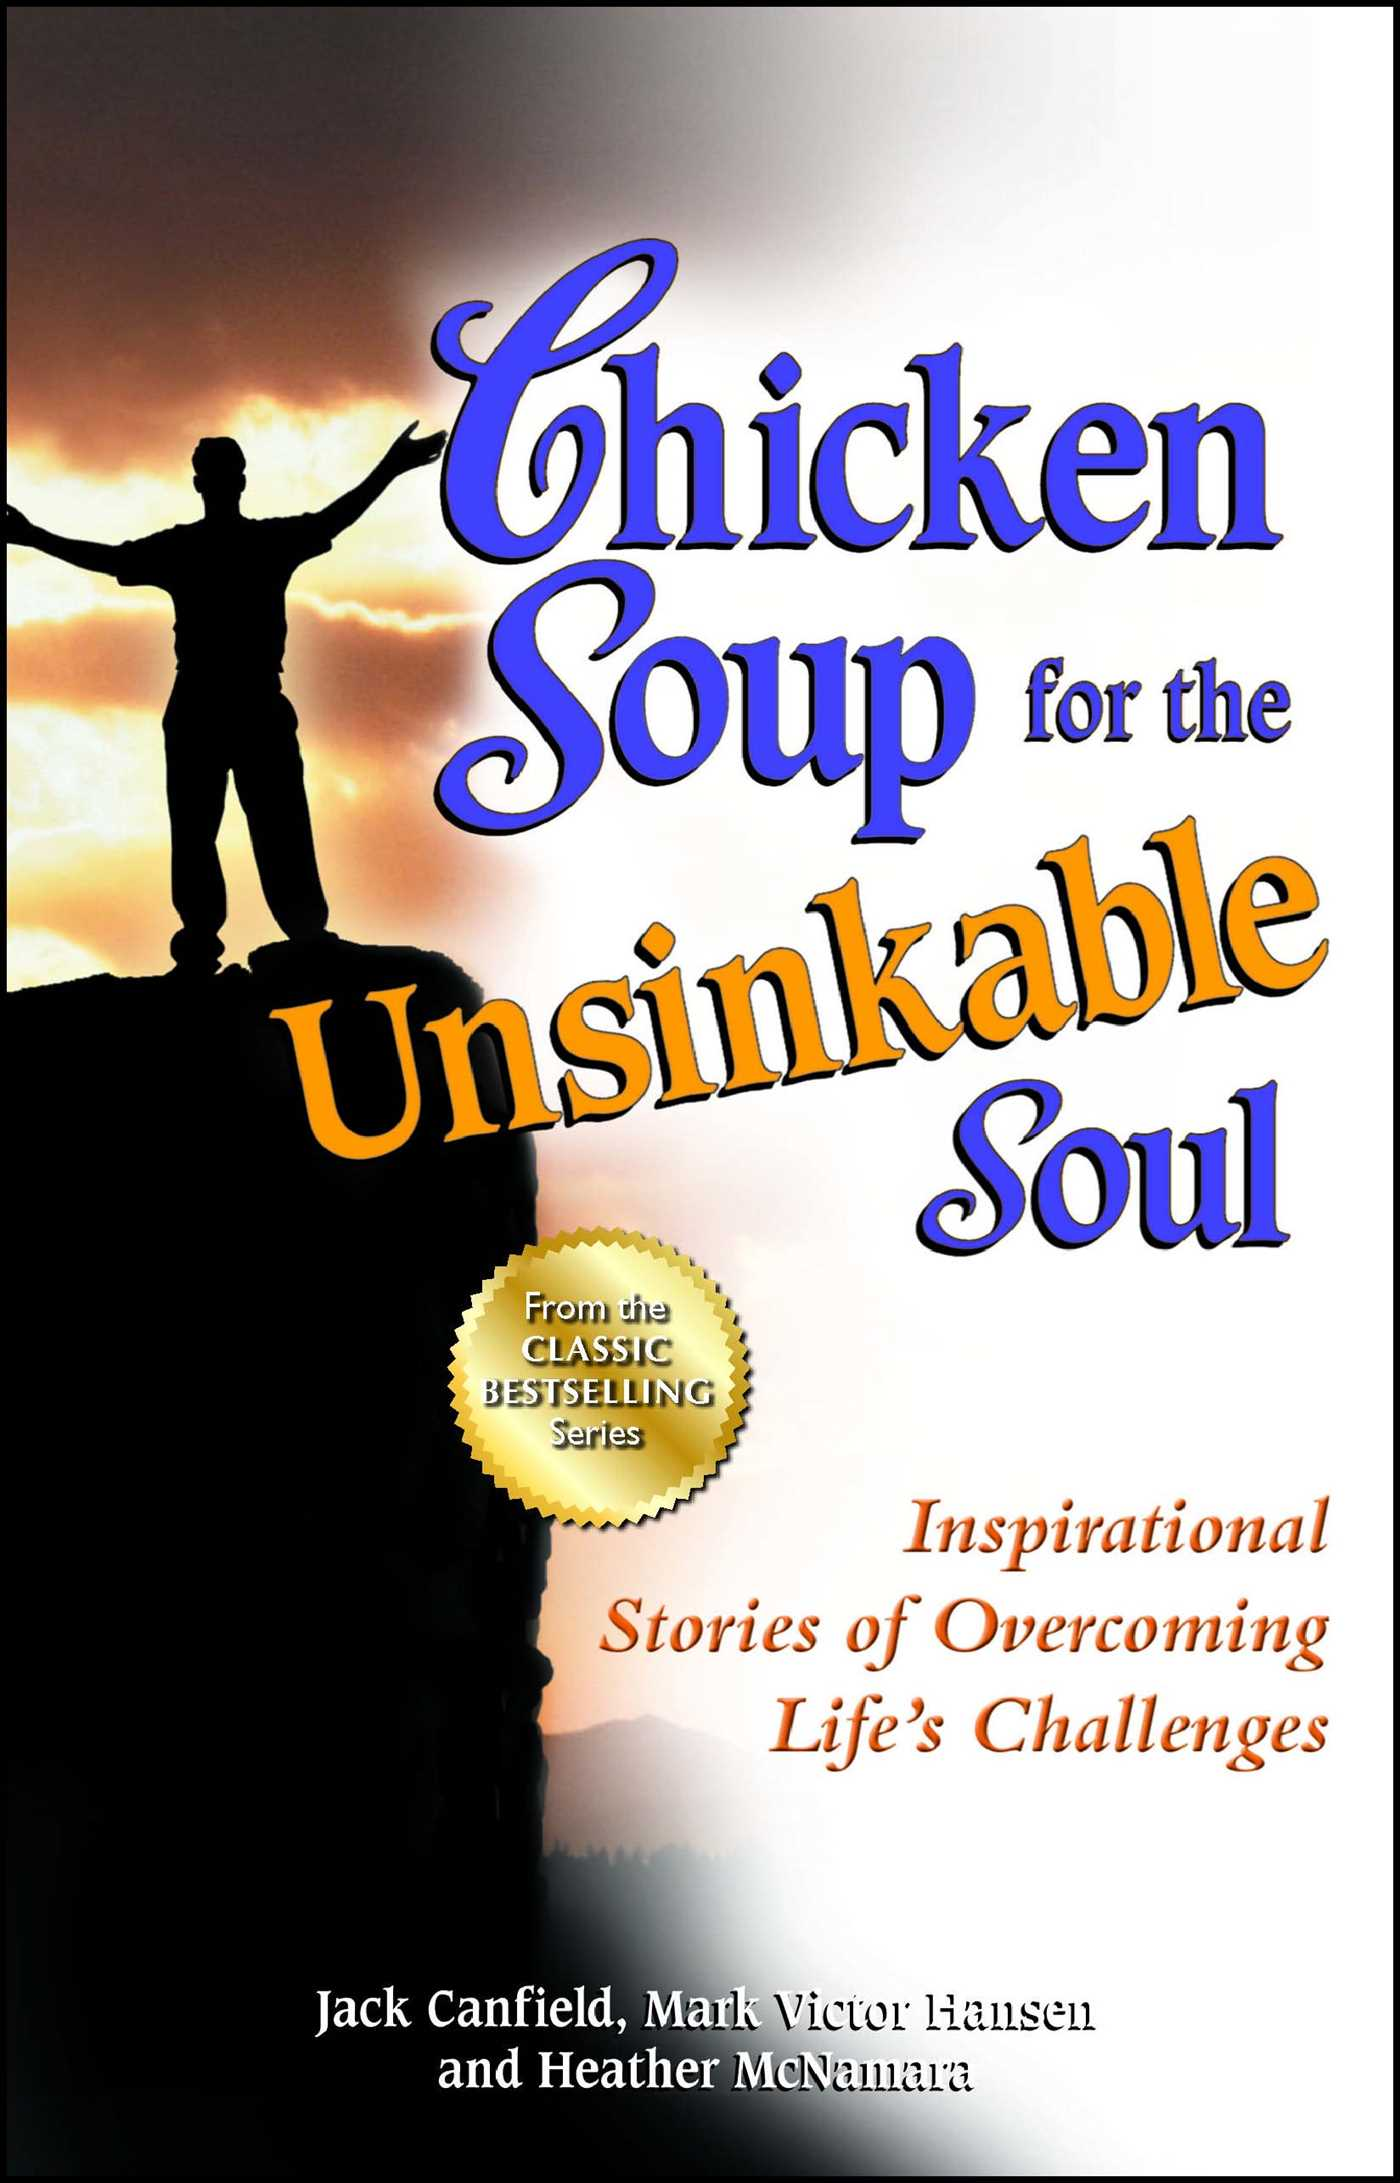 Chicken-soup-for-the-unsinkable-soul-9781623610838_hr